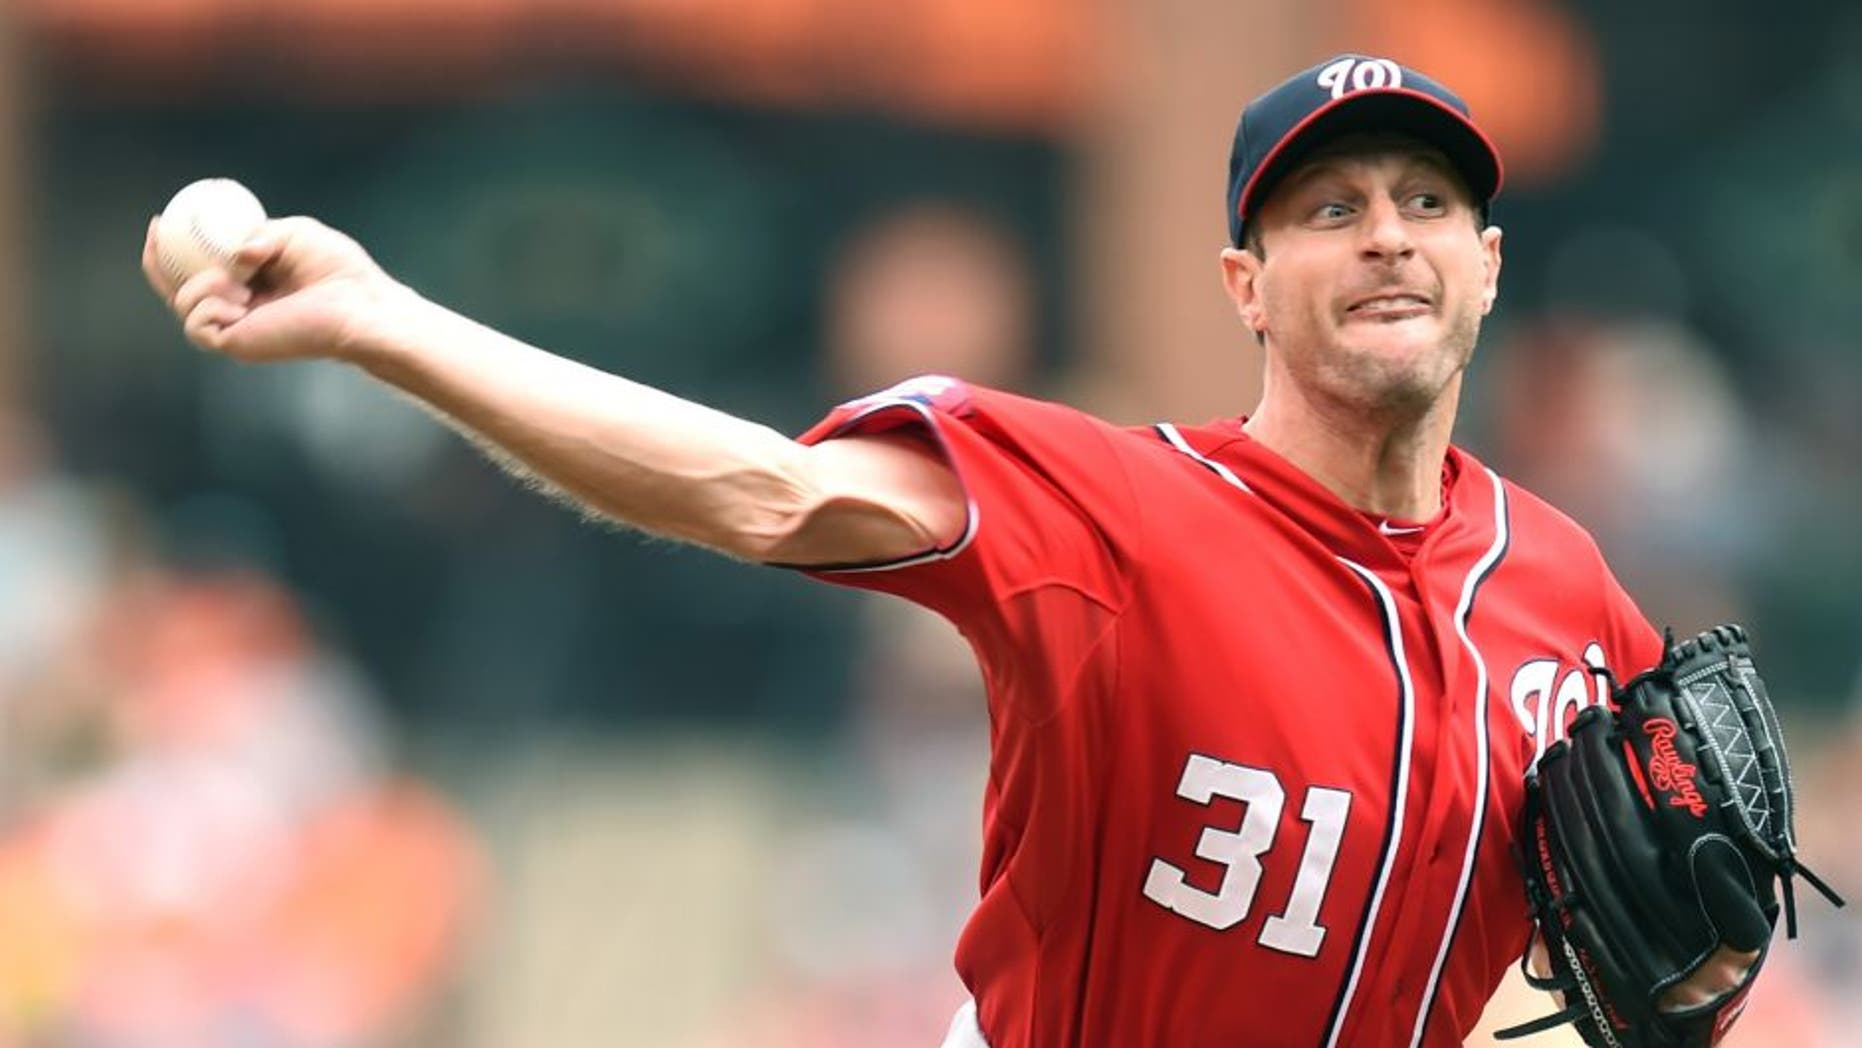 BALTIMORE, MD - JULY 12: Max Scherzer #31 of the Washington Nationals pitches in the first inning during a baseball game against the Baltimore Orioles at Oriole Park at Camden Yards on July 12, 2015 in Baltimore, Maryland. (Photo by Mitchell Layton/Getty Images)